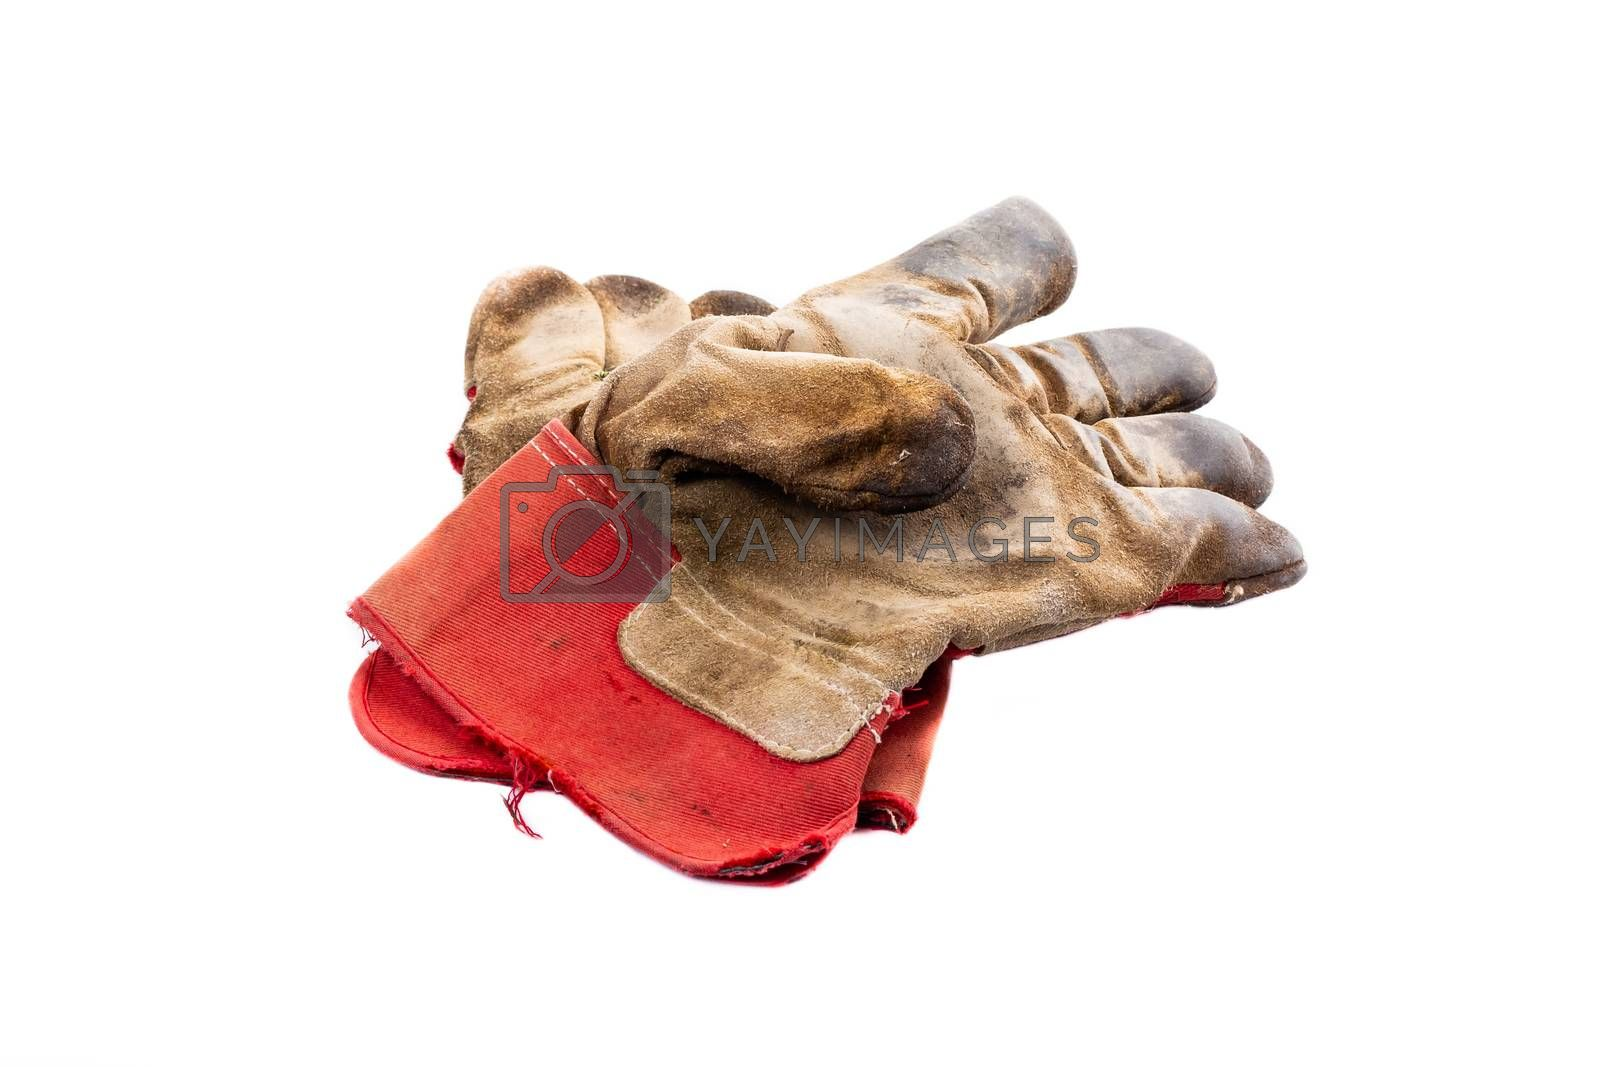 Royalty free image of pair of leather construction gloves with worn red fabric by AtlanticEUROSTOXX